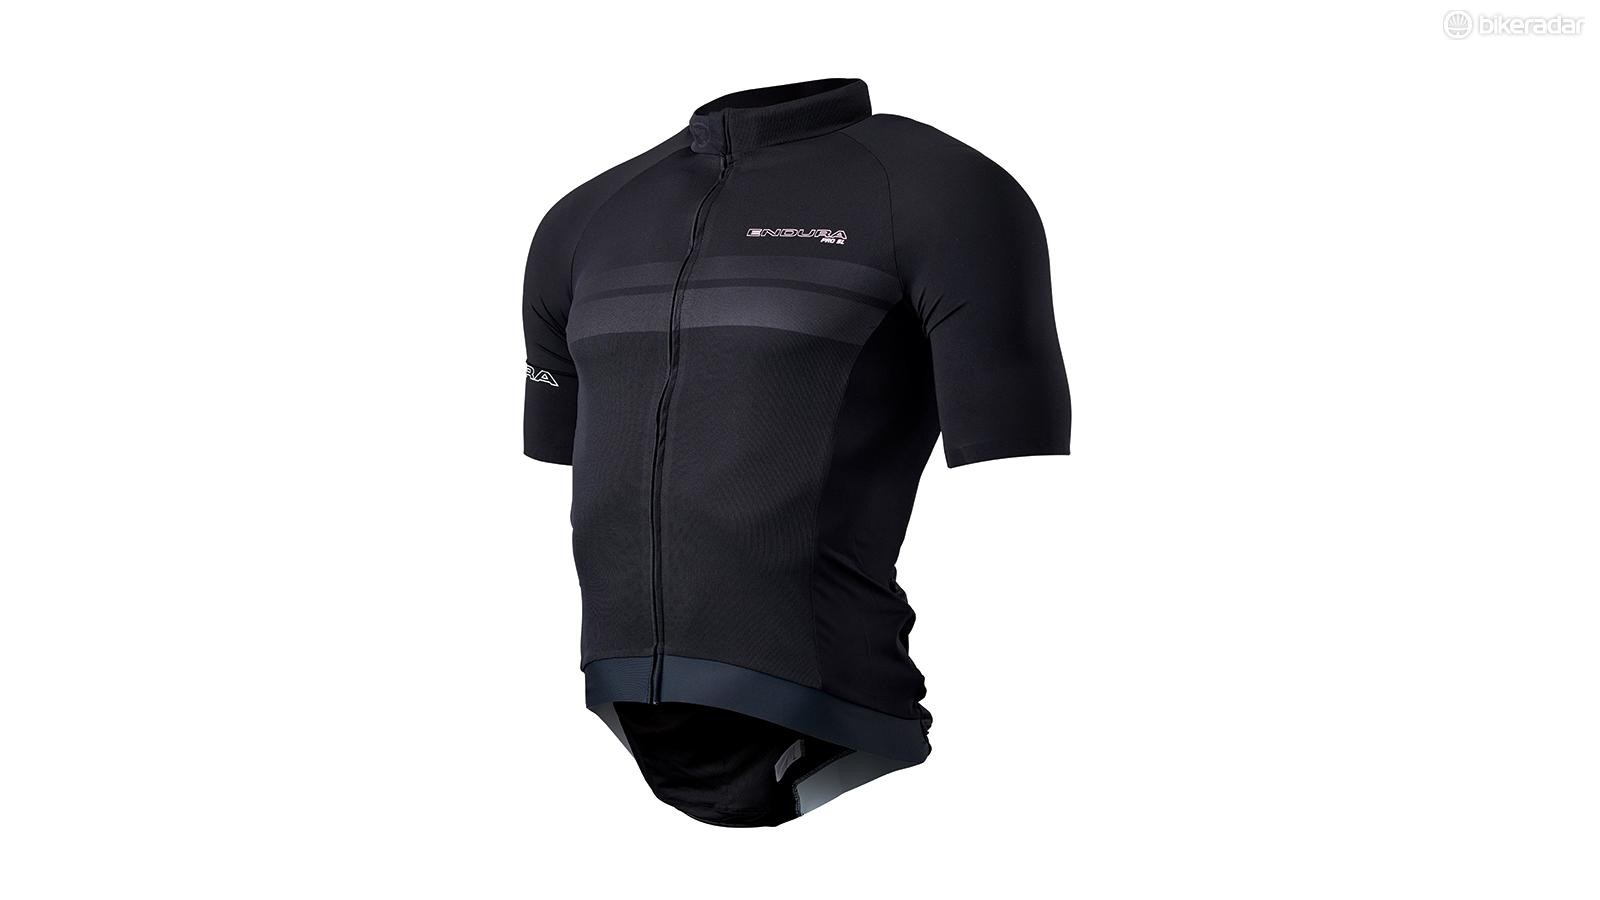 Top performing jersey at a very sensible price from Endura